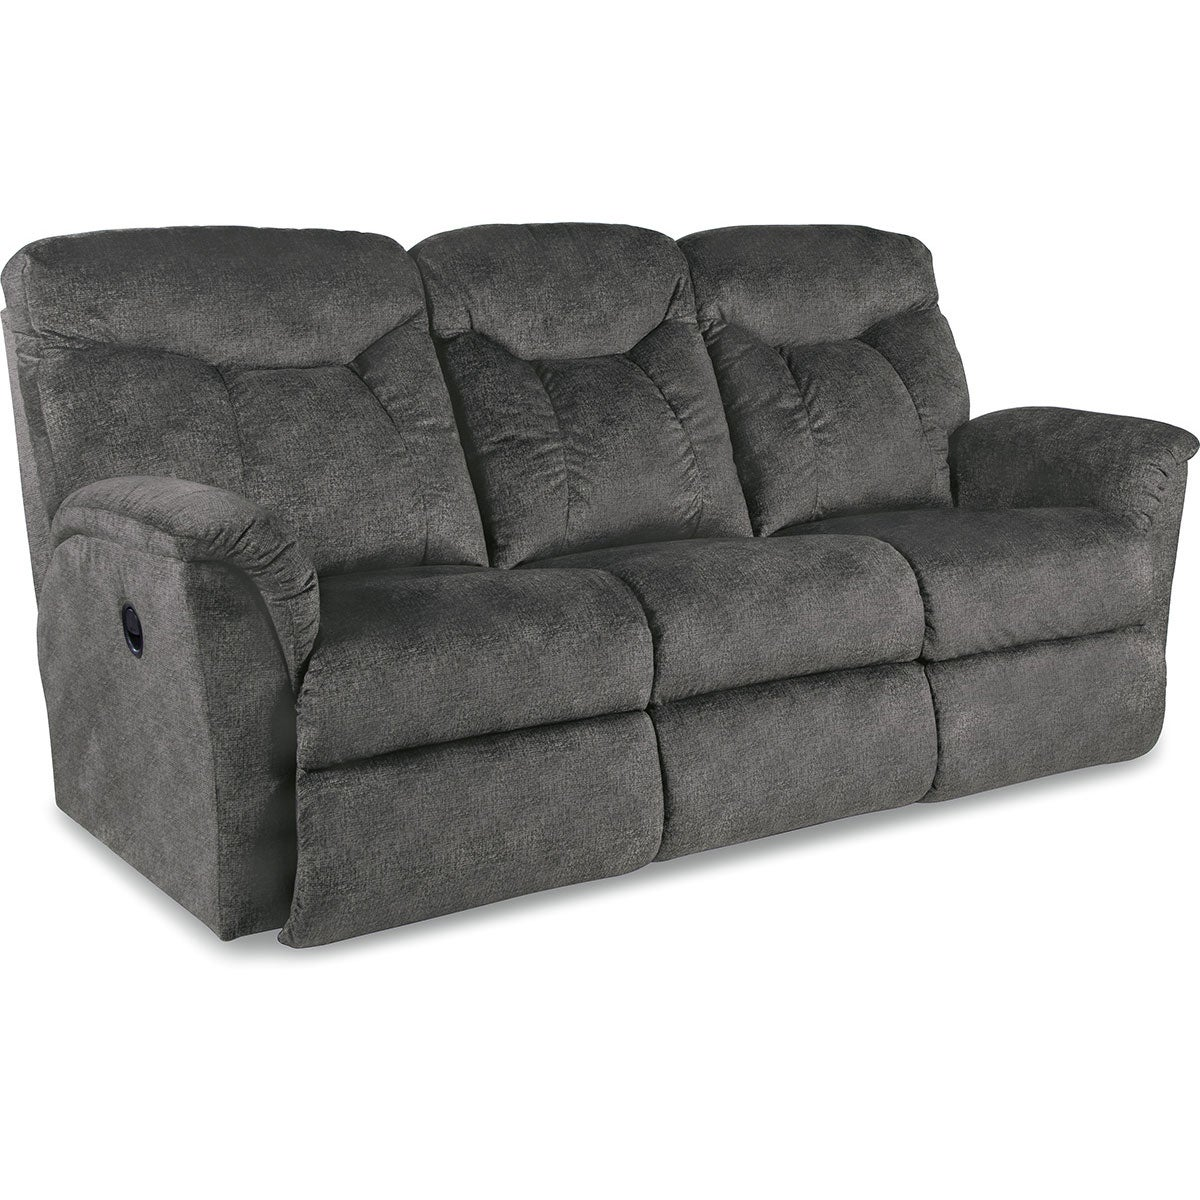 Fortune La Z Time Full Reclining Sofa